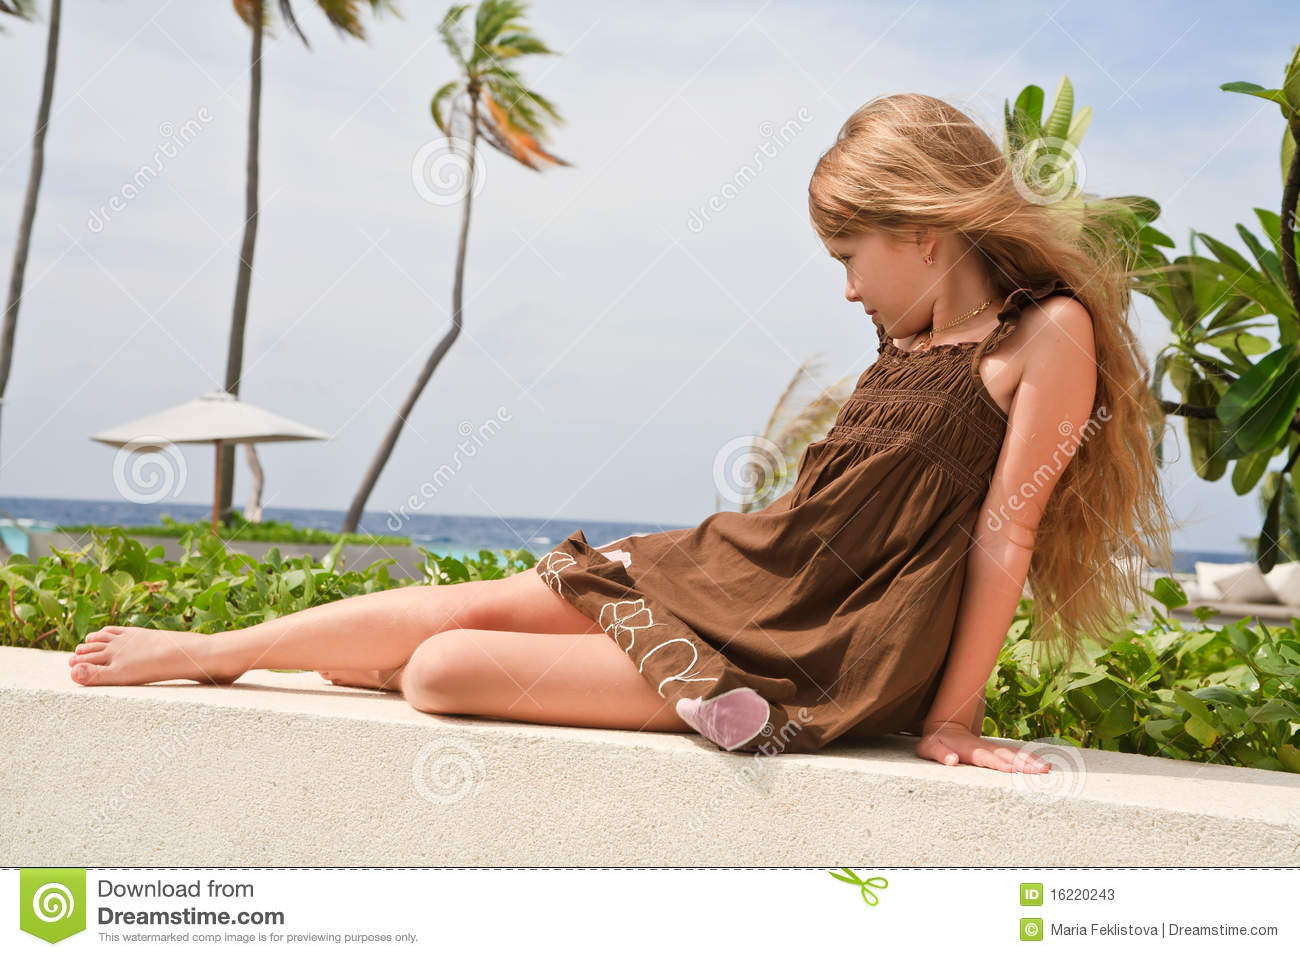 Thoughtful girl sitting near ocean in a dream.